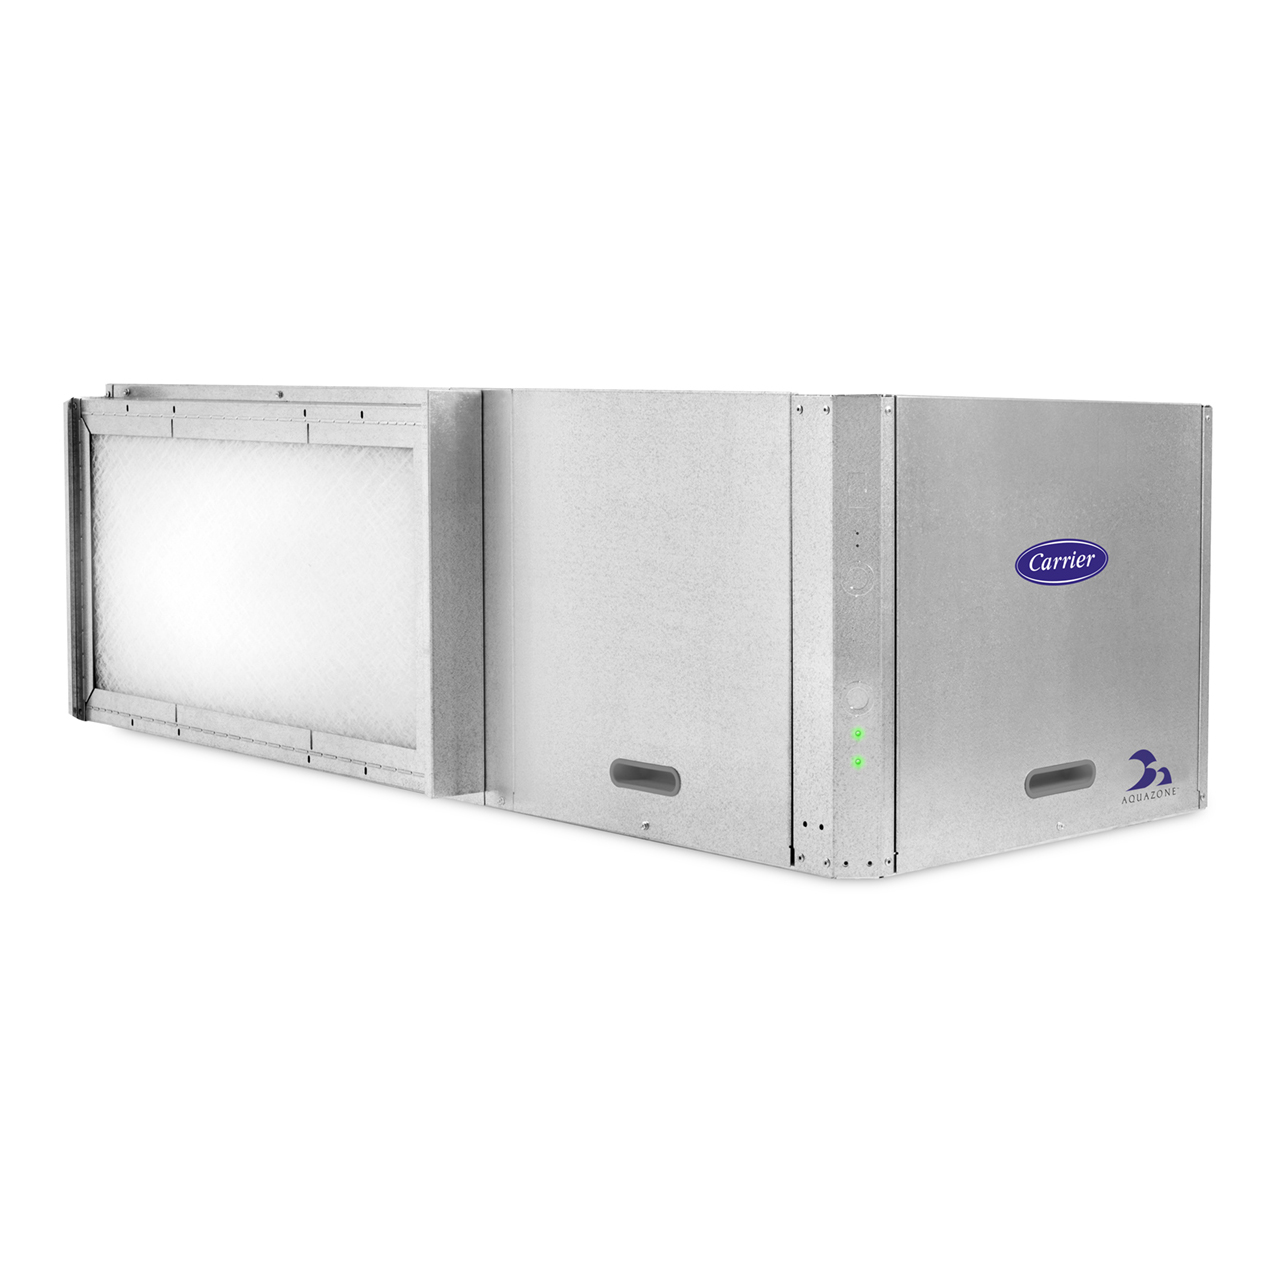 carrier-50pth-indoor-water-cooled-two-stage-water-source-heat-pump